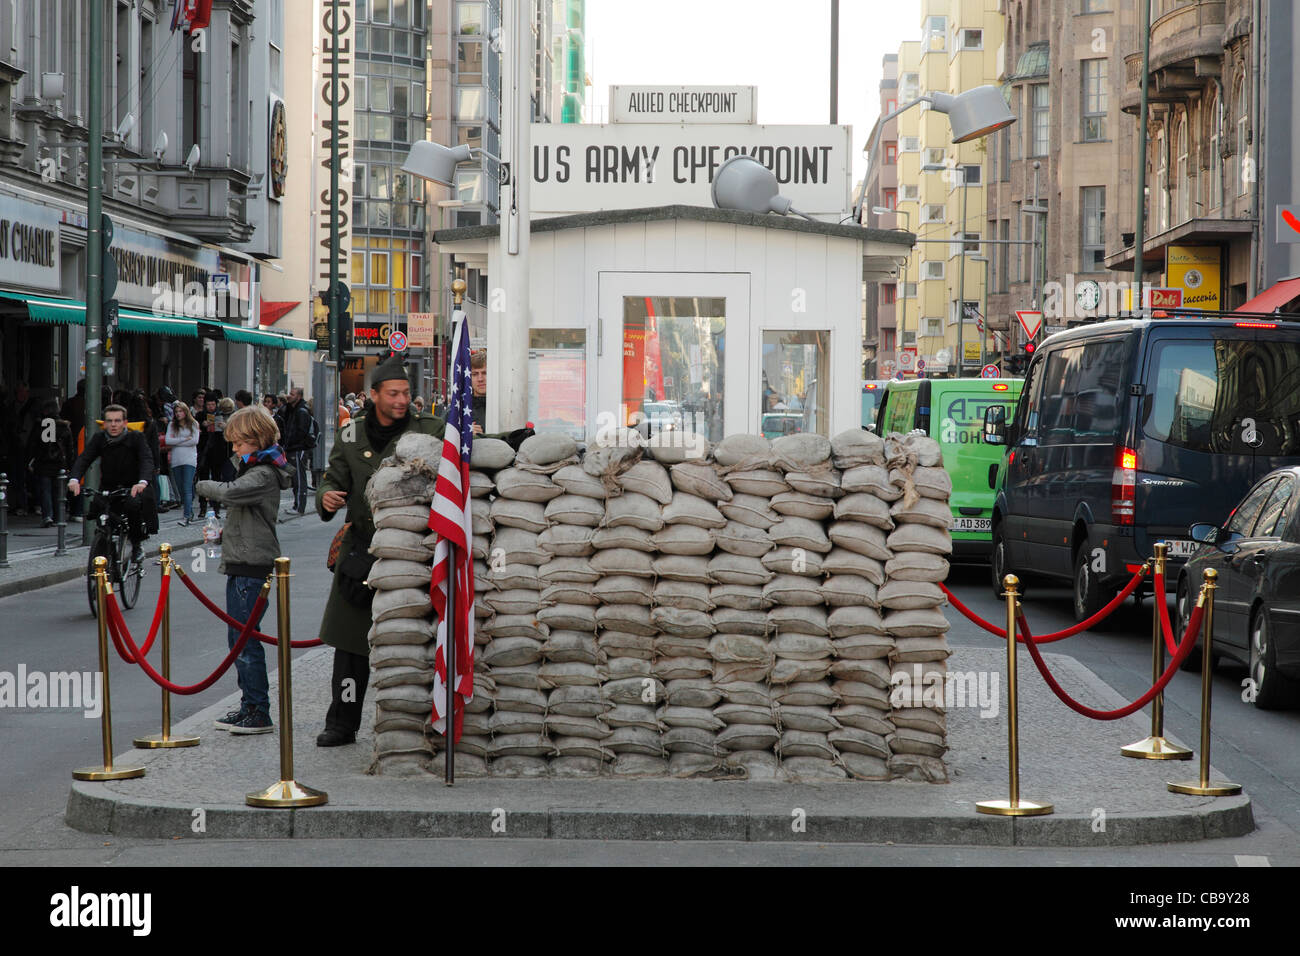 US Armee-Checkpoint Charlie in Berlin, Deutschland Stockbild